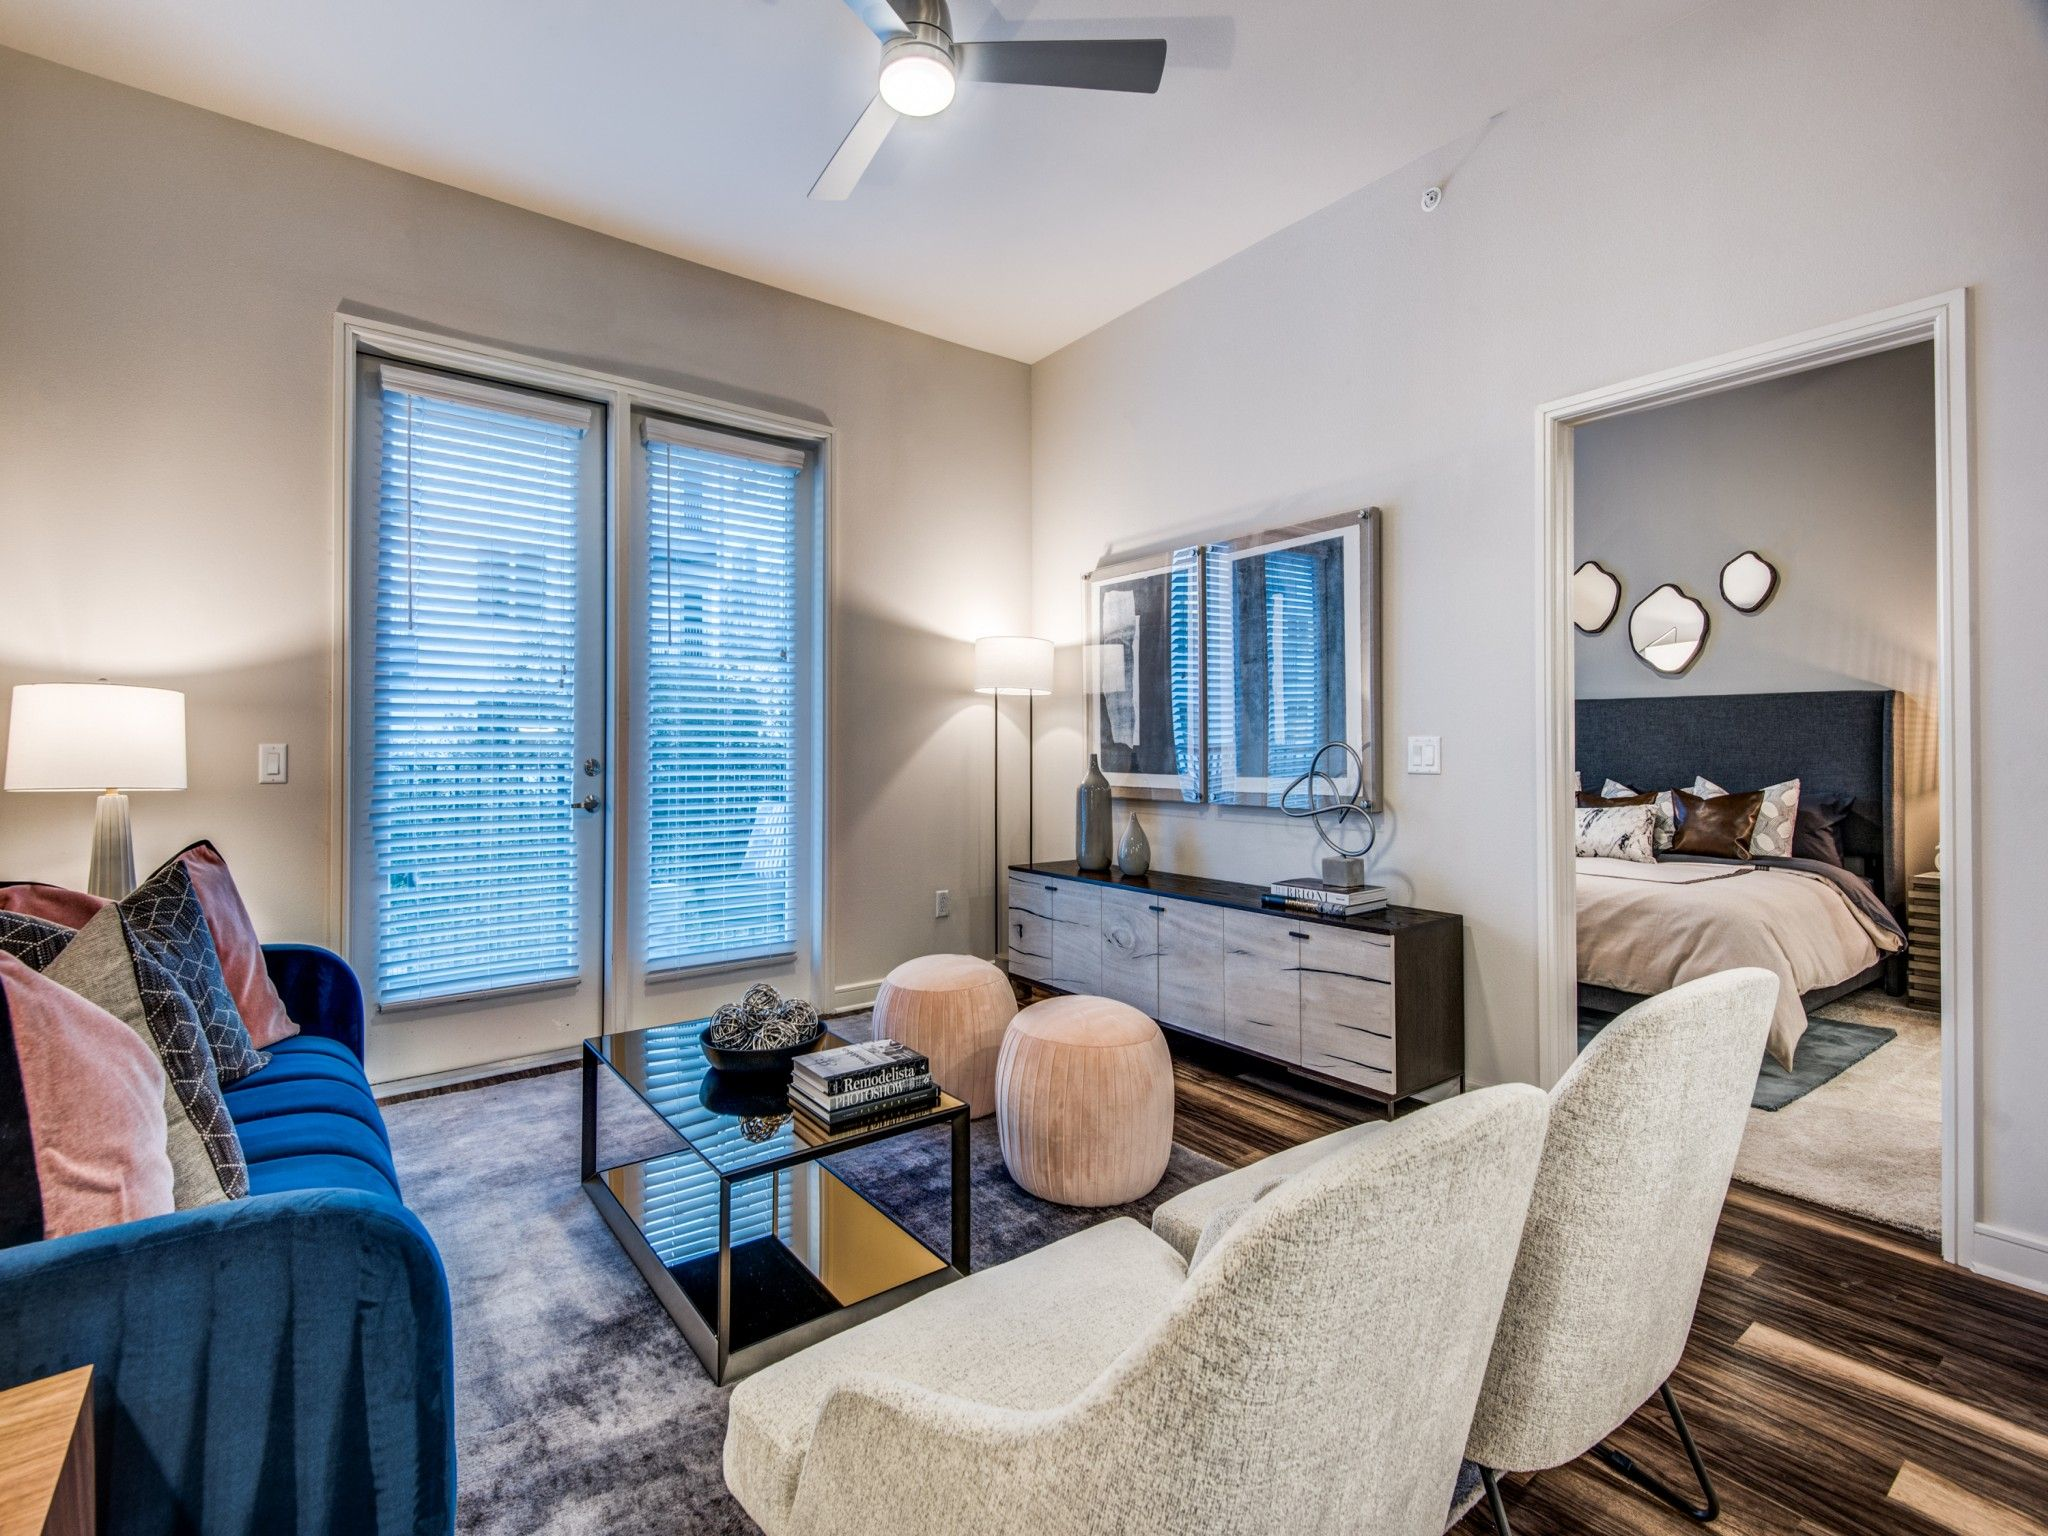 Apartment living area with seating and view of bedroom